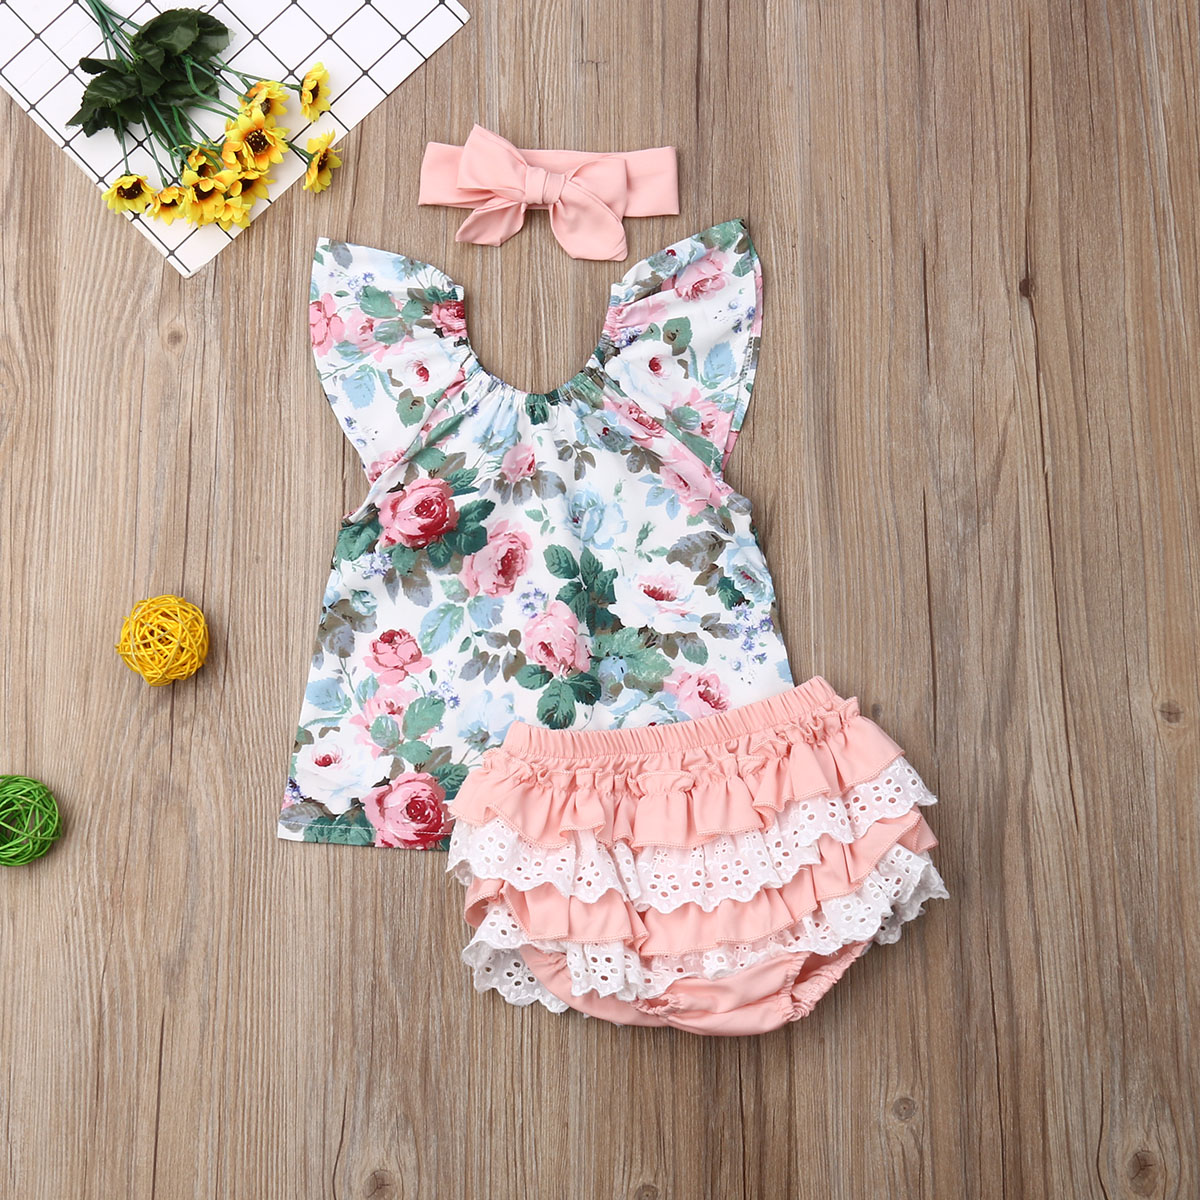 3pcs Baby Floral Printed Fly Sleeve Top Lace Patchwork Ruffle PP Shorts Headband Outfit Toddler Kids Girl Clothing Summer